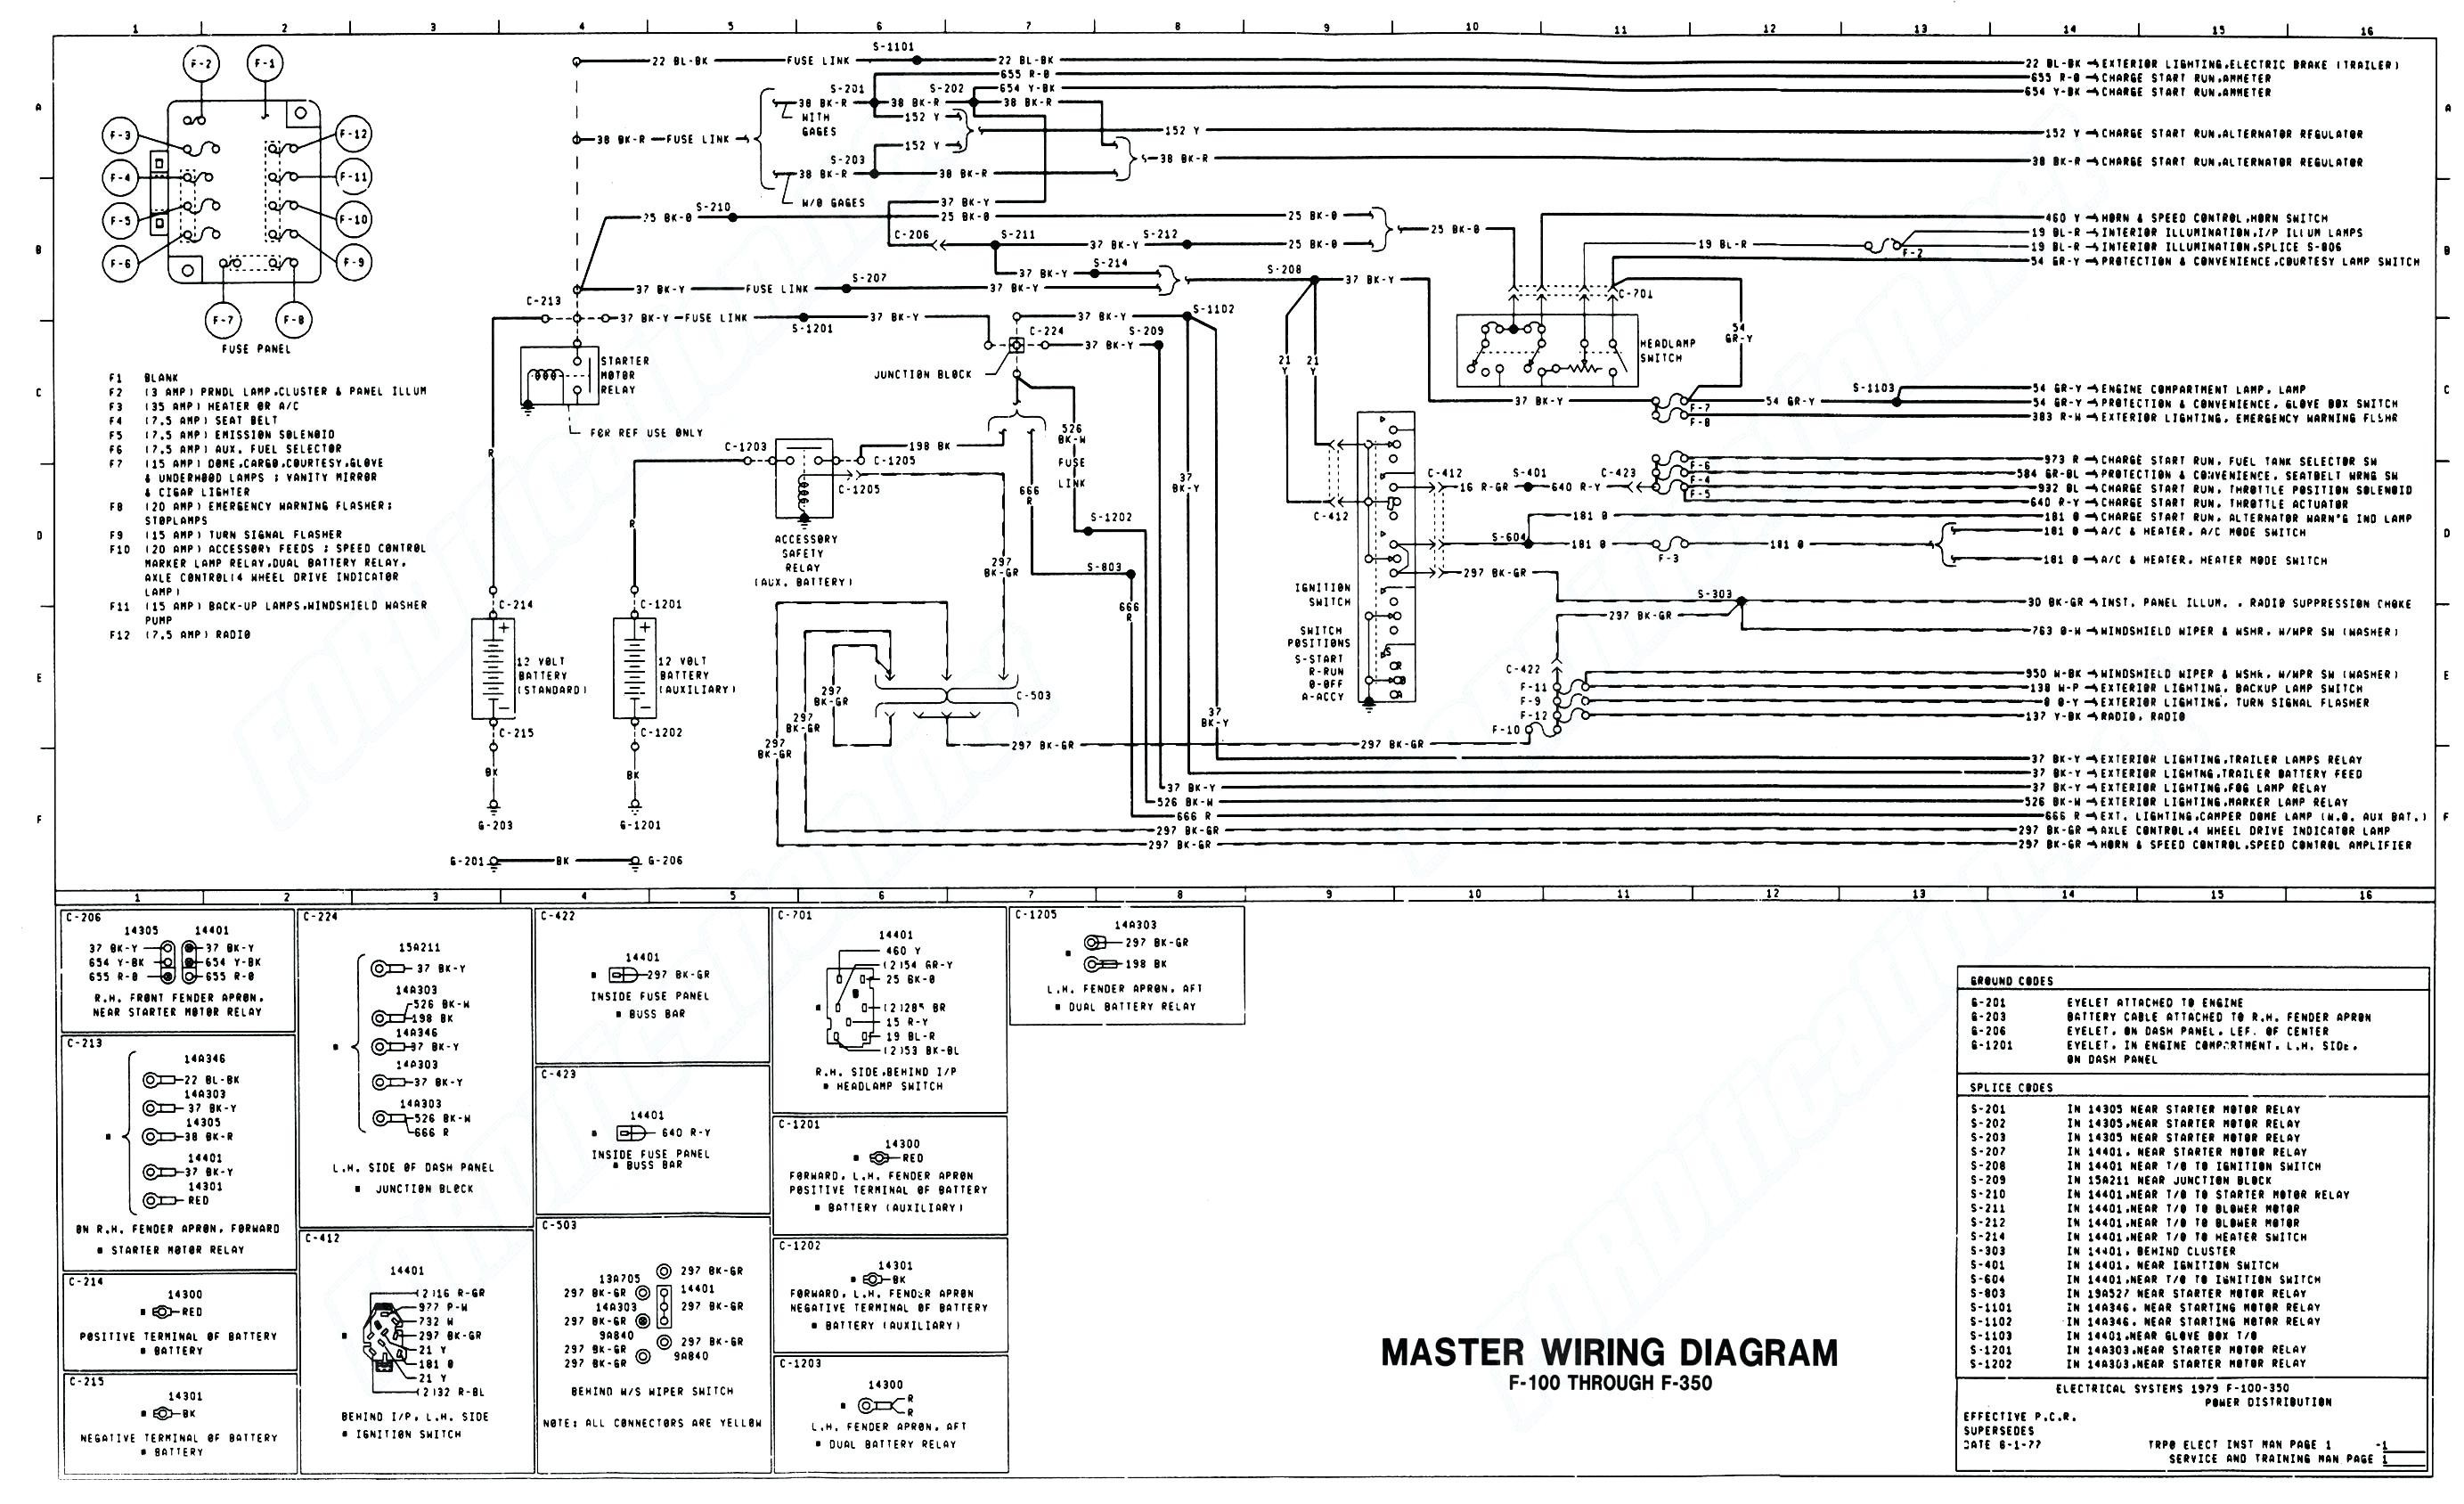 2012 f150 tail light wiring diagram electrical wiring diagrams 2013 f350 tail light wiring diagram ford f150 tail light wiring wiring diagram image 2013 f150 tail light wiring diagram 2012 f150 tail light wiring diagram